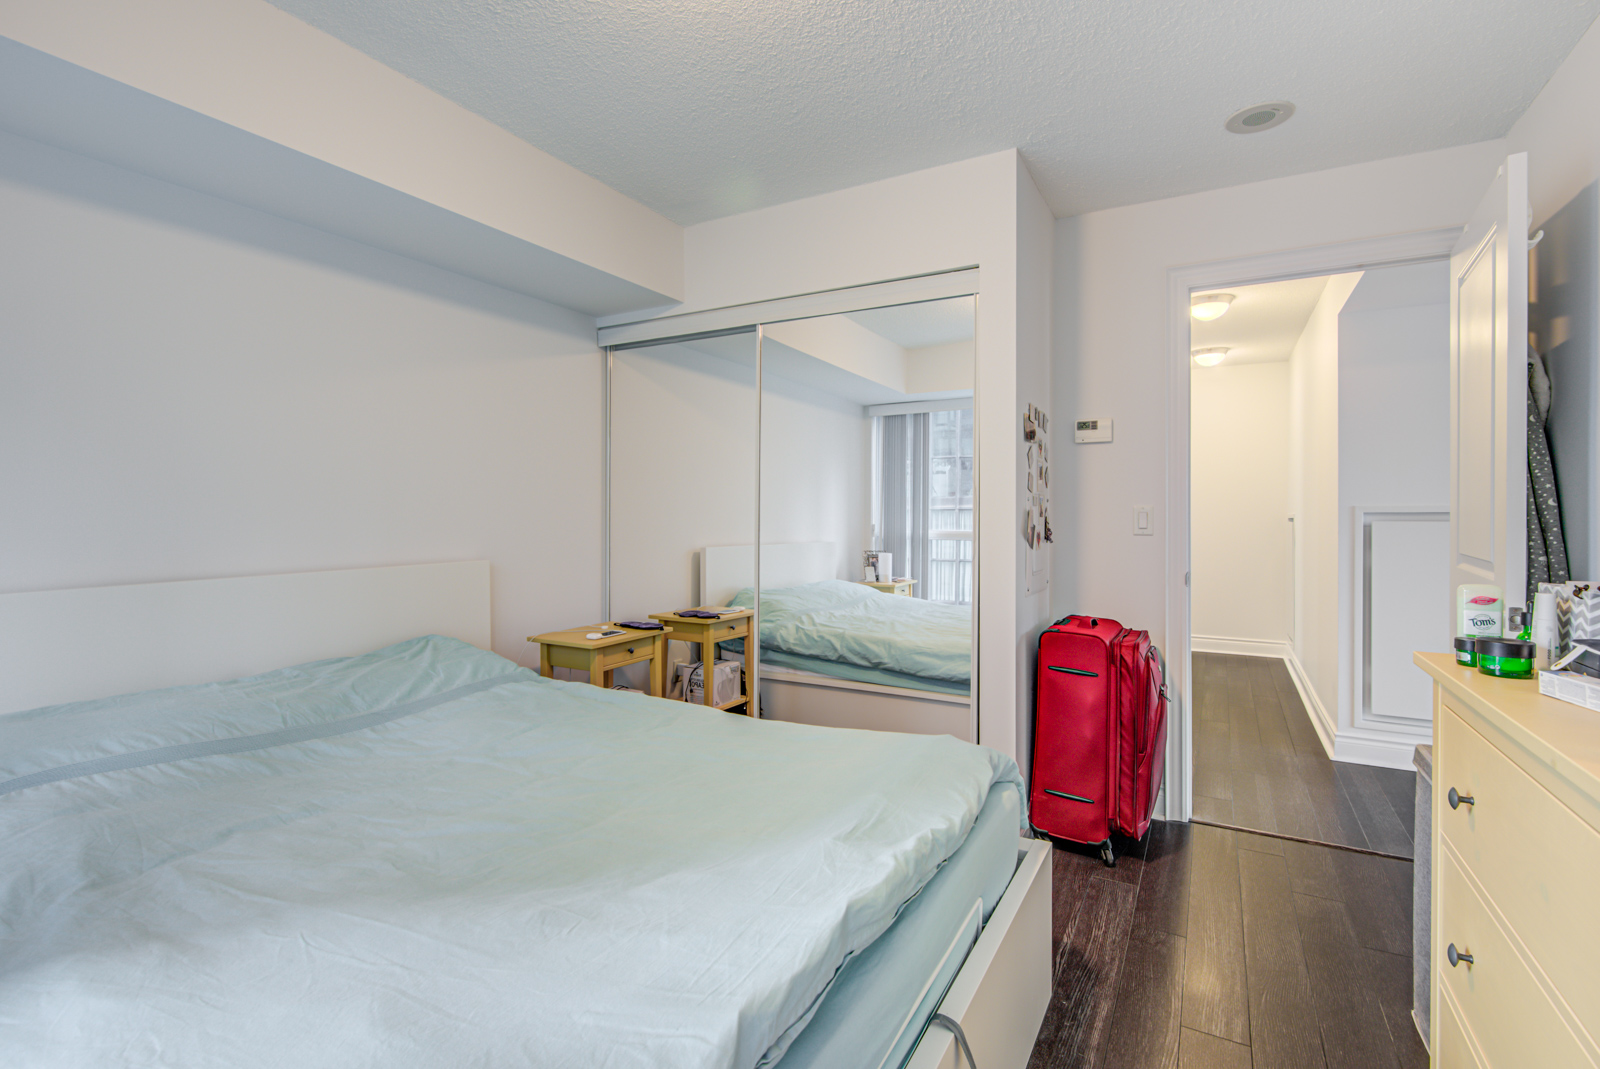 Bedroom with large white bed, sleek dark brown floors, red luggage bag, and closet with mirror doors.